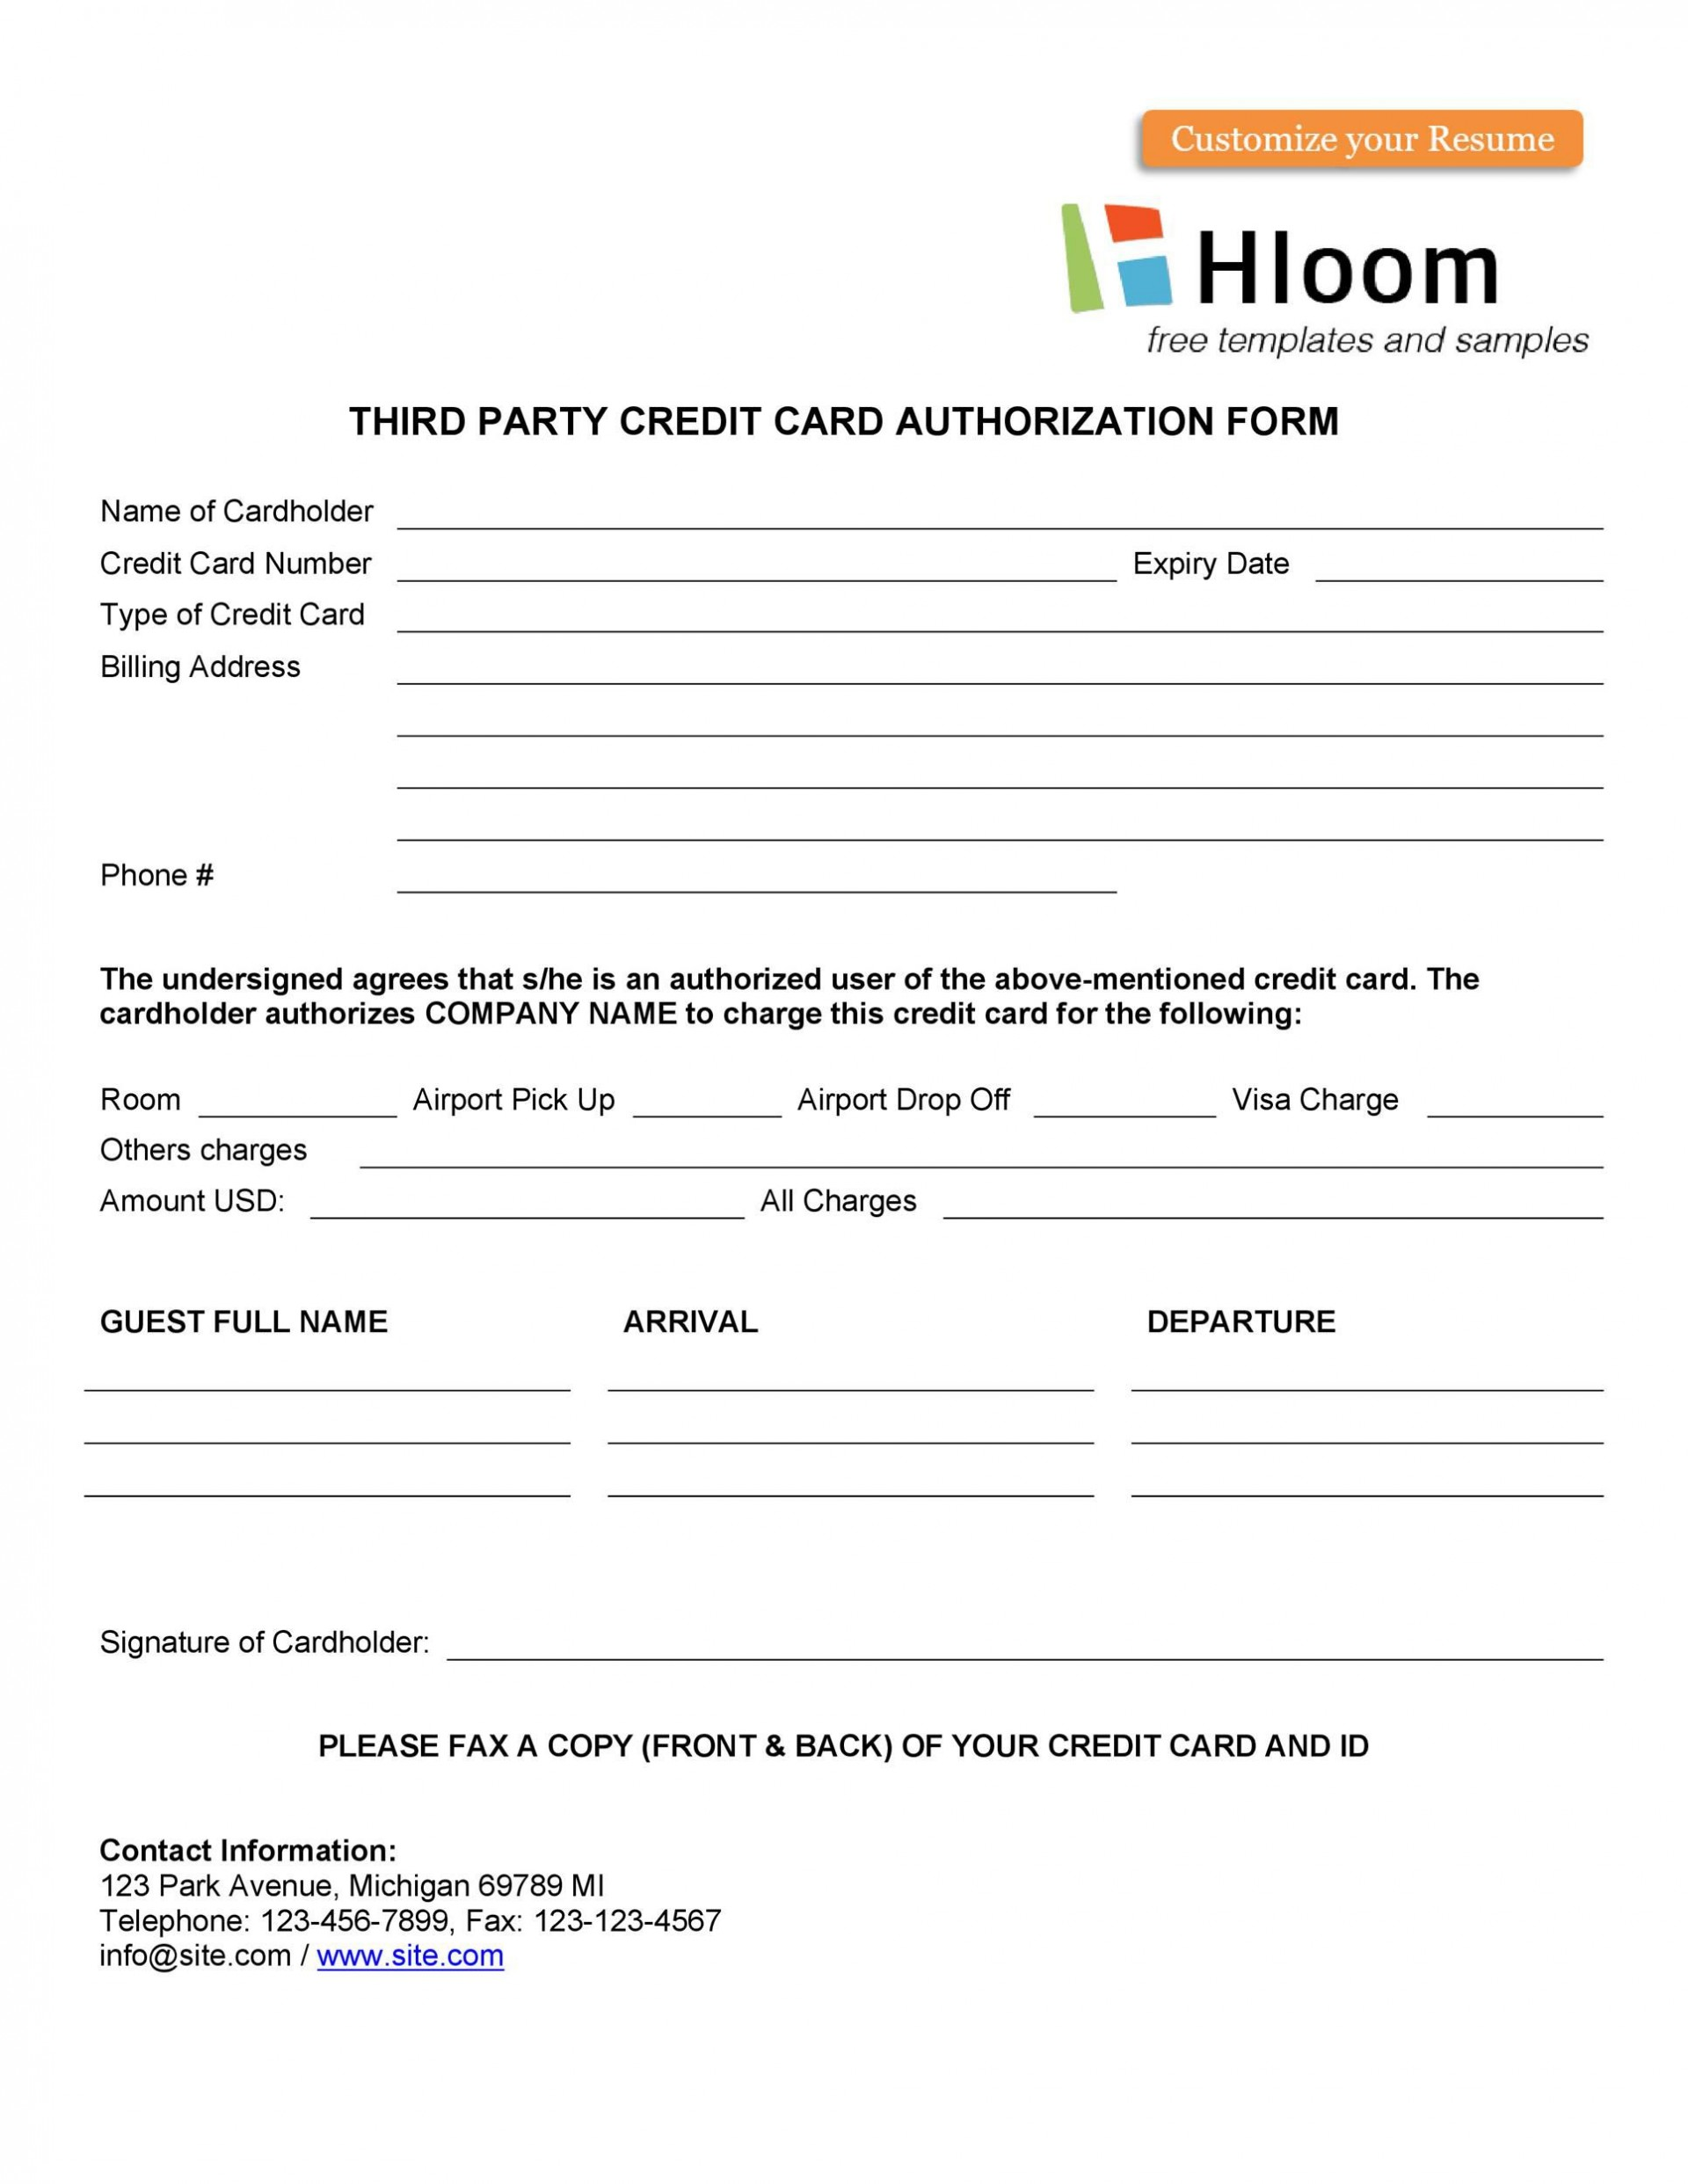 007 Unbelievable Credit Card Usage Request Form Template Sample 1920